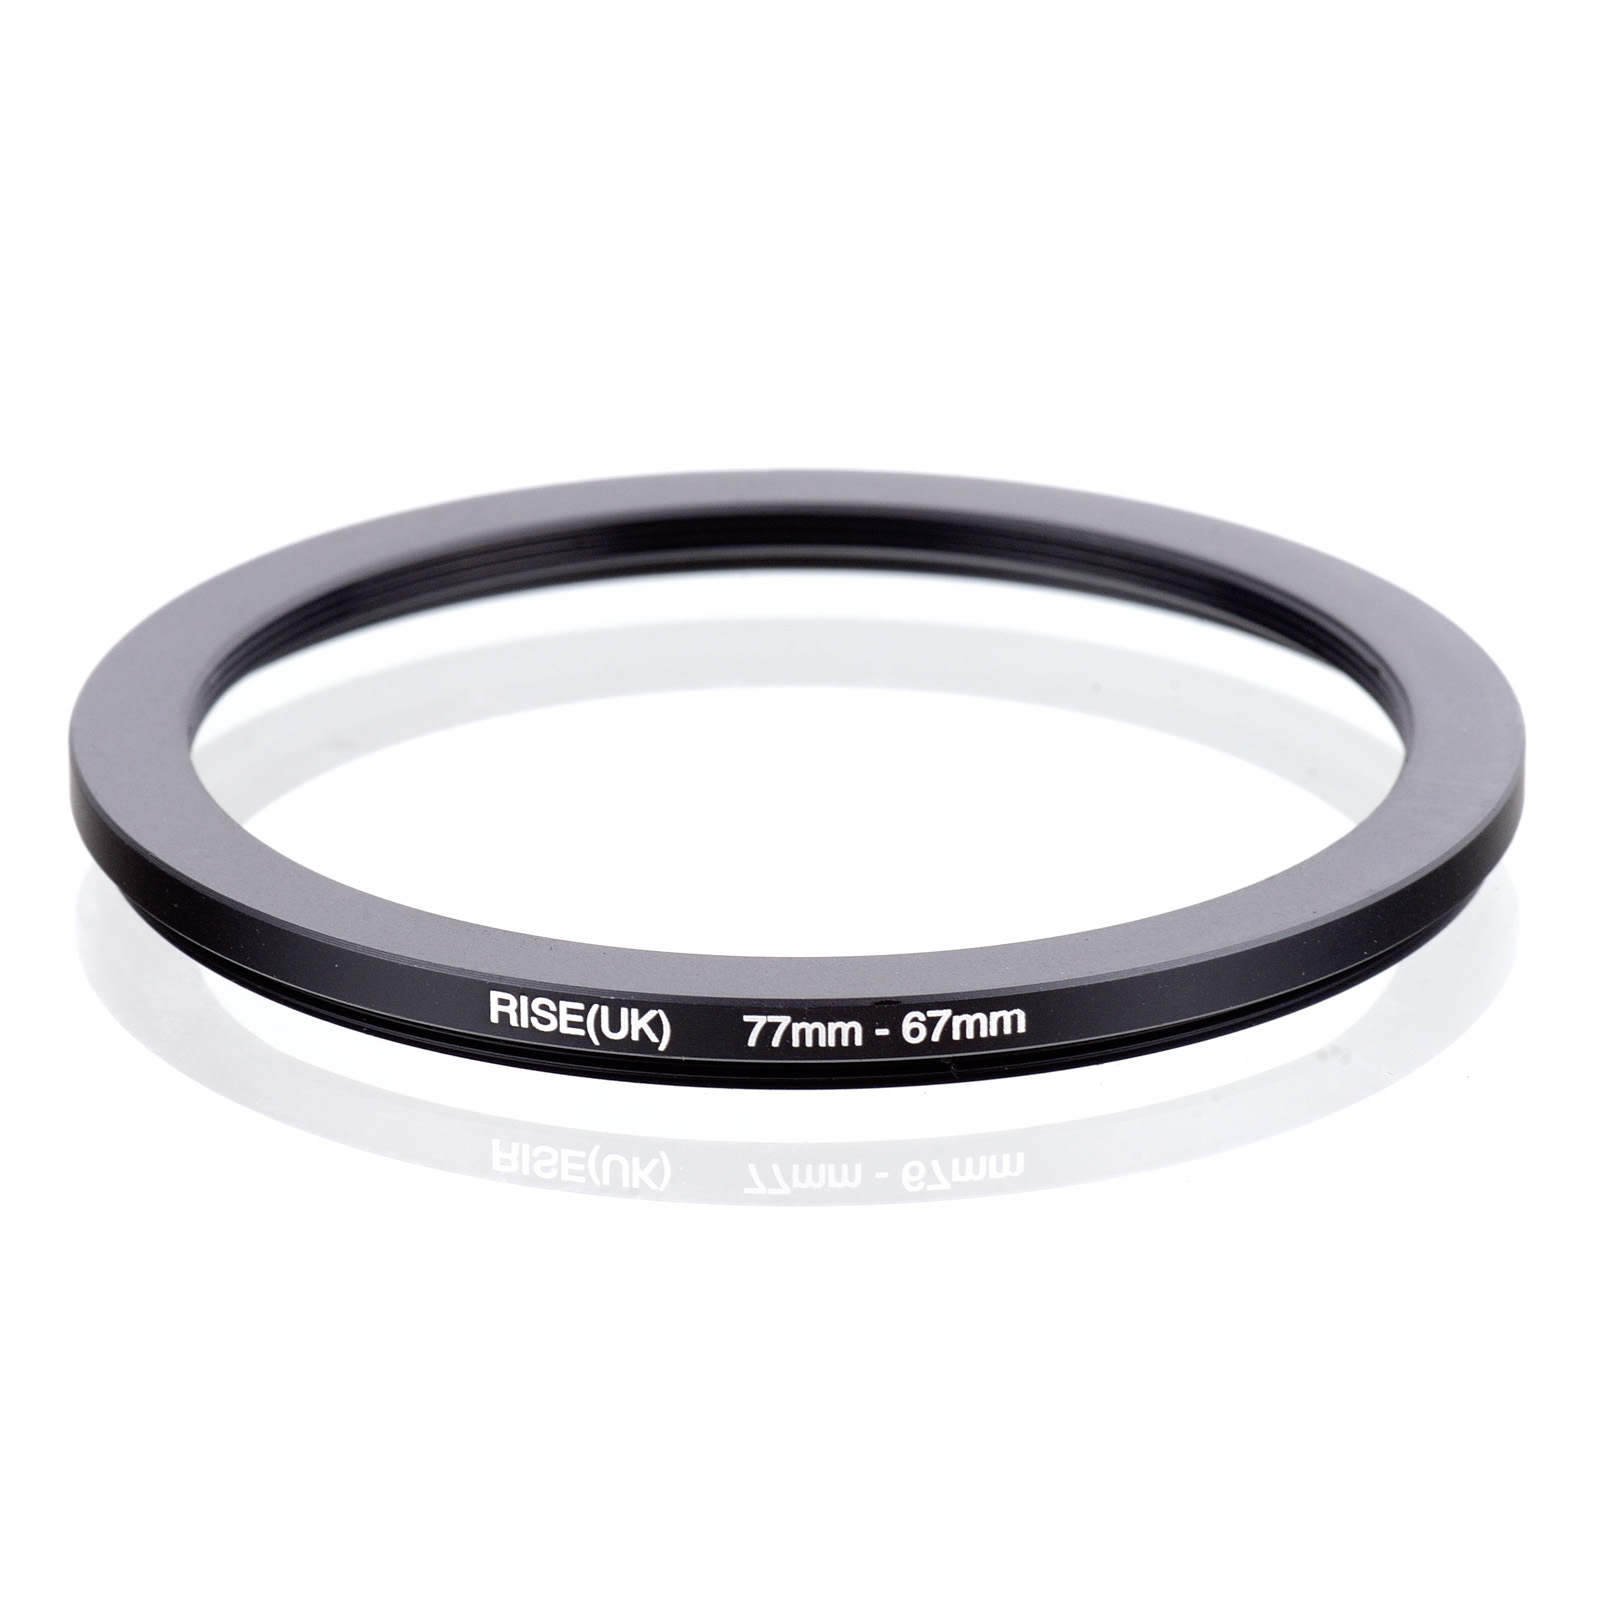 RISE(UK) 77mm-67mm 77-67 Mm 77 To 67 Step Down Filter Ring Adapter